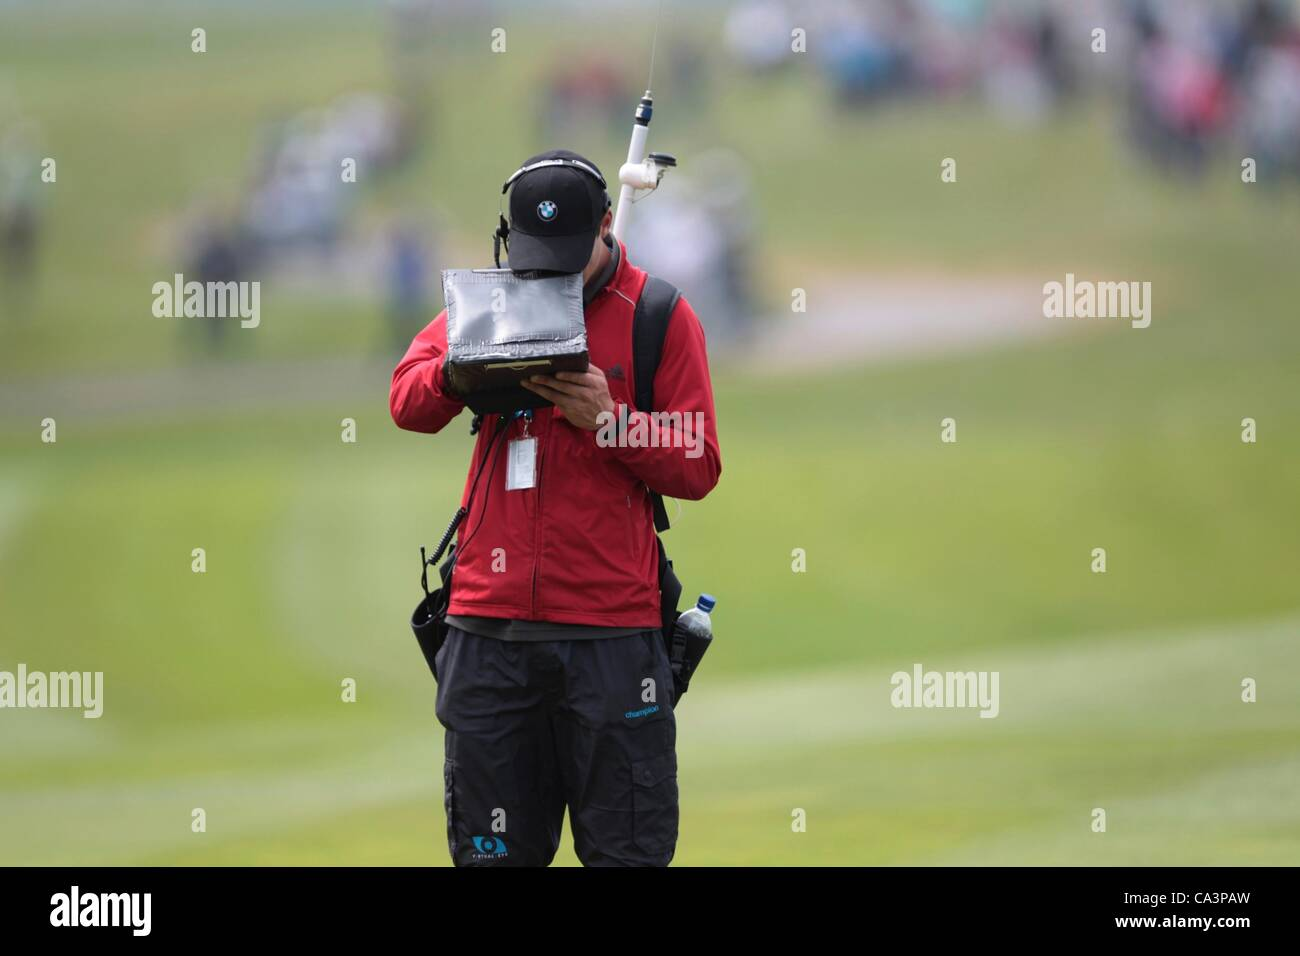 02.06.2012 Newport Wales. GPS locations recorded on Day 3 of the ISPS Handa Wales Open from Celtic Manor. - Stock Image